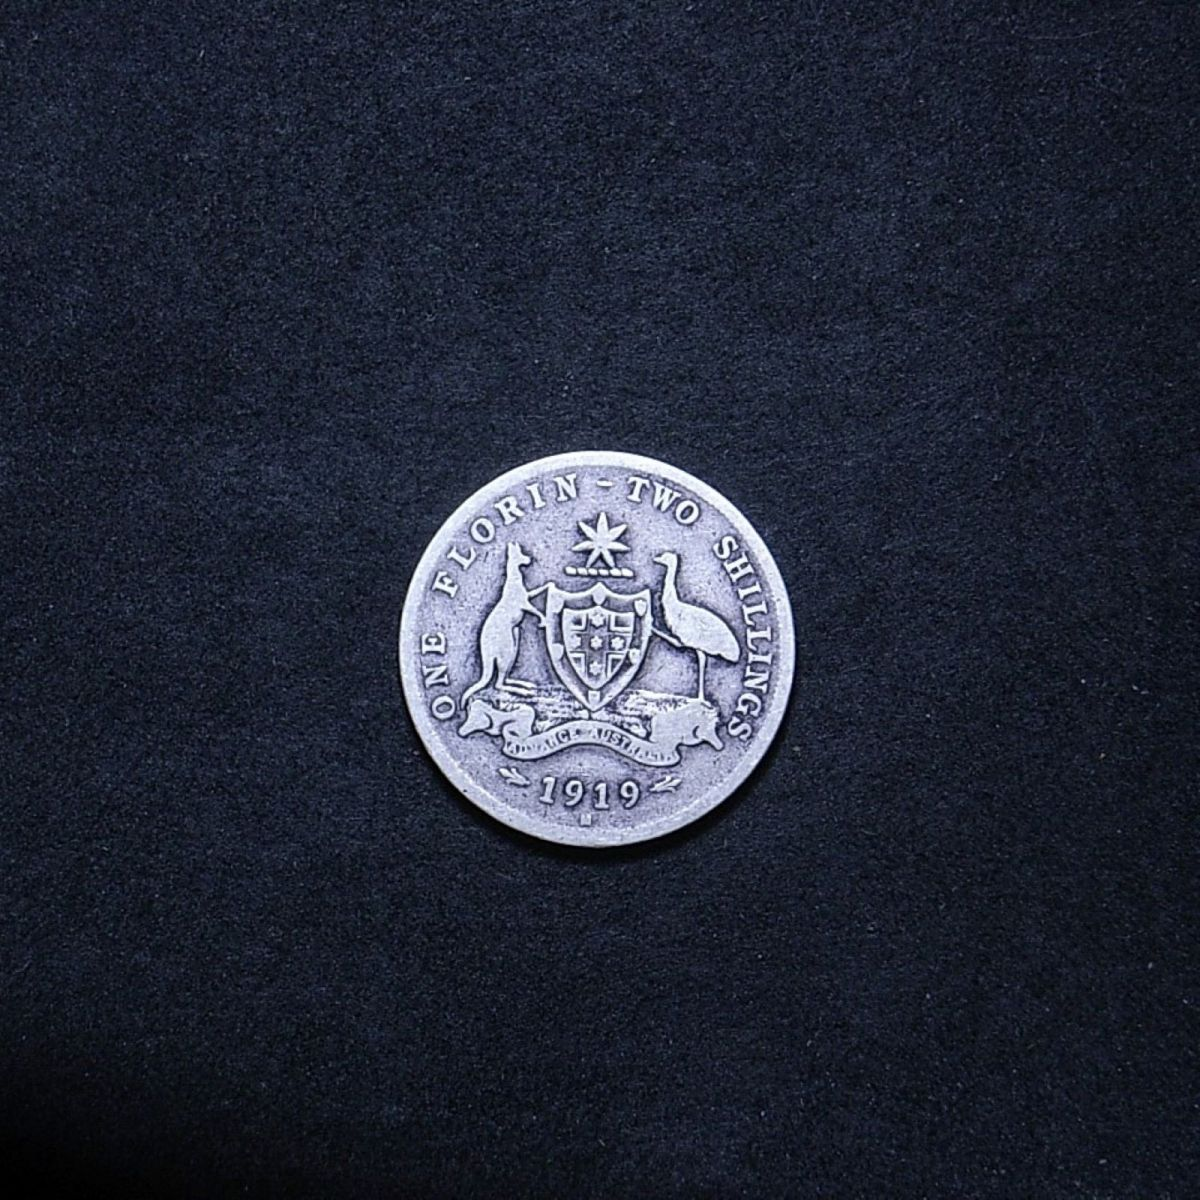 Aussie 1919M florin reverse showing overall appearance